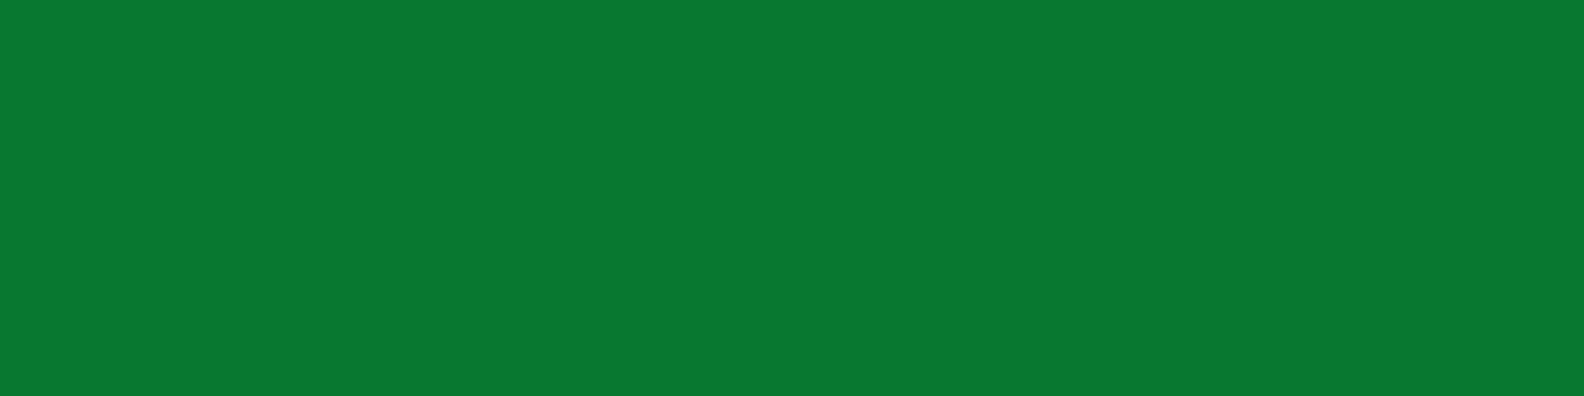 1584x396 La Salle Green Solid Color Background